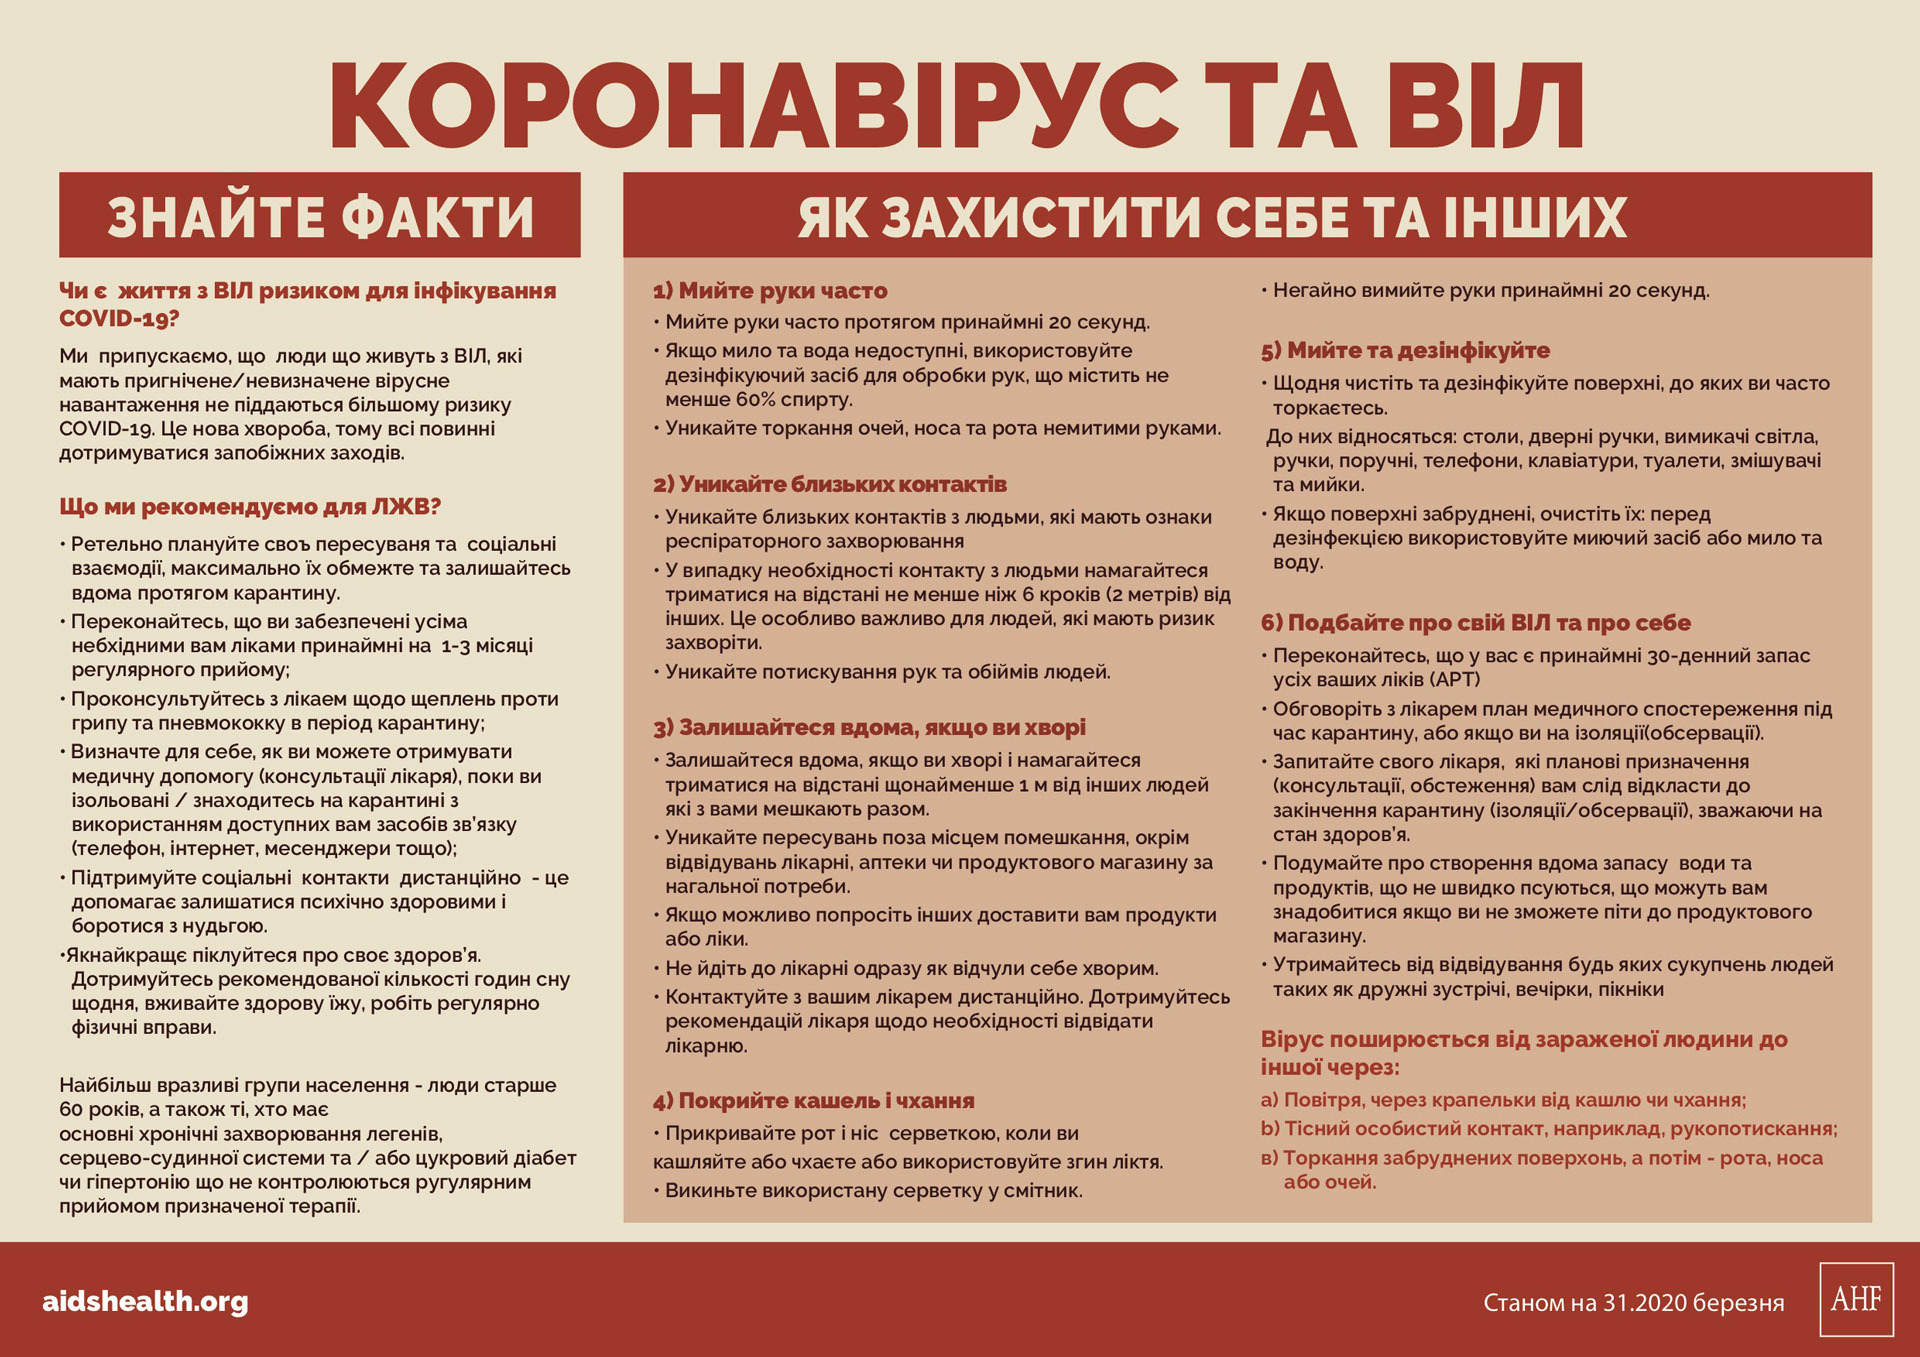 20 Iec Covid19 Hiv Factsheet A3 Landscape Ukrainian Updated March.31.2020 (1)